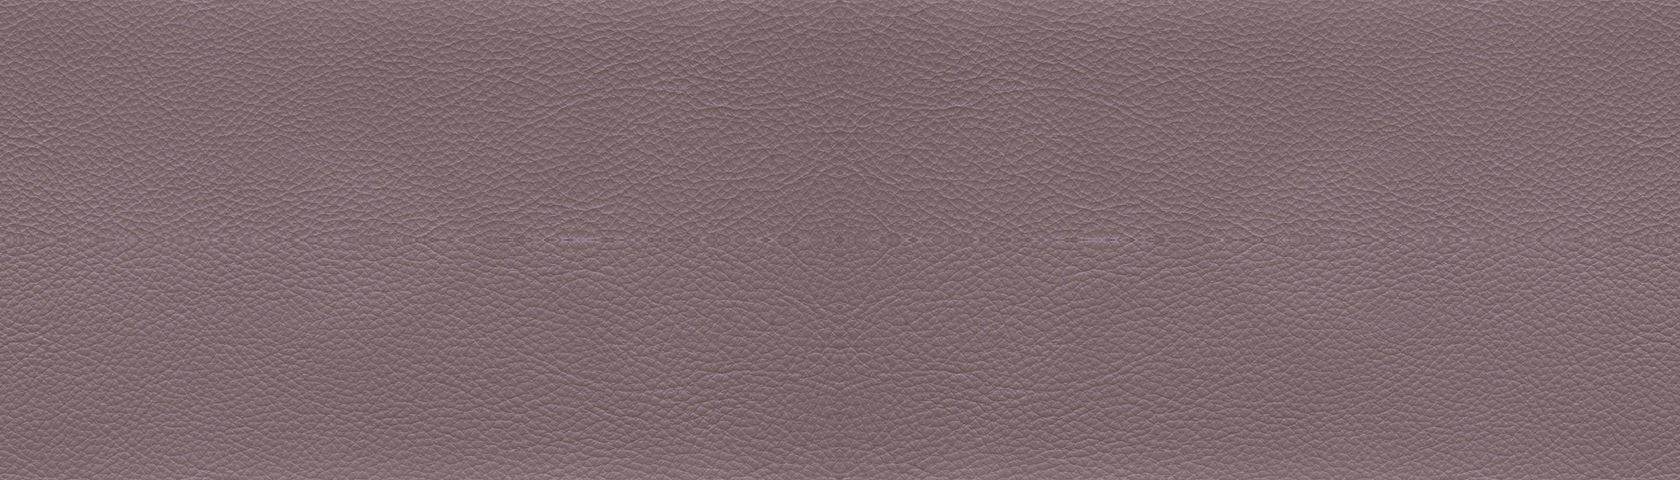 Taupe Leather